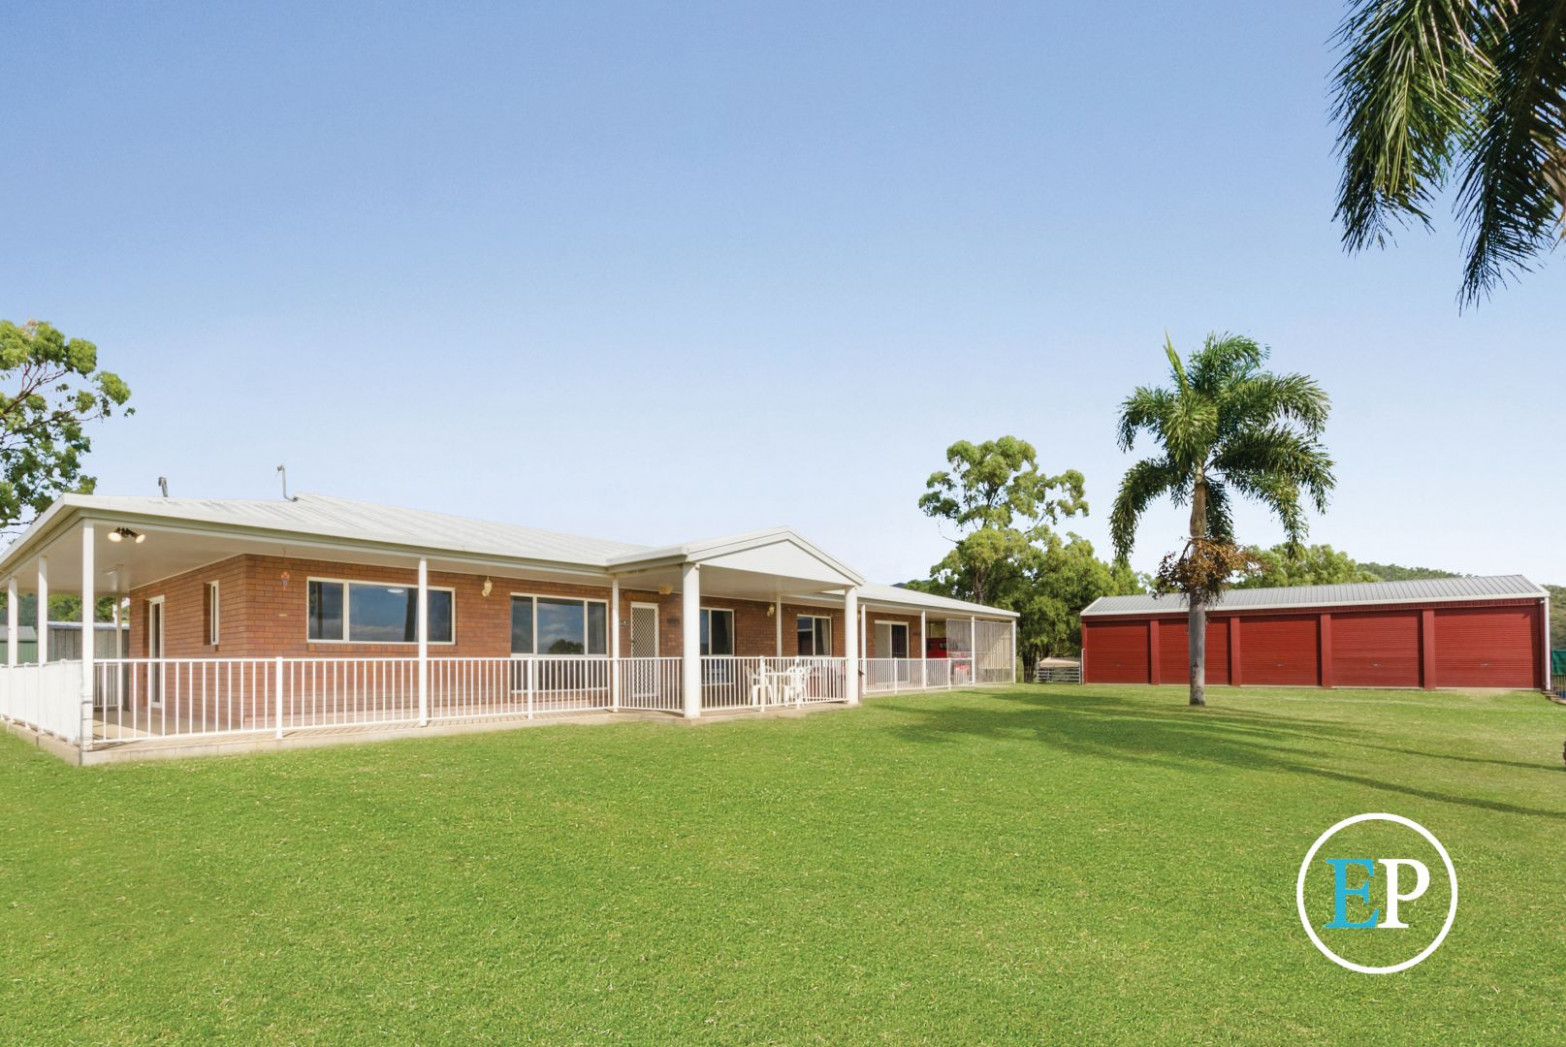 8 Dingo Park Road, Woodstock QLD 8 House For Sale ..